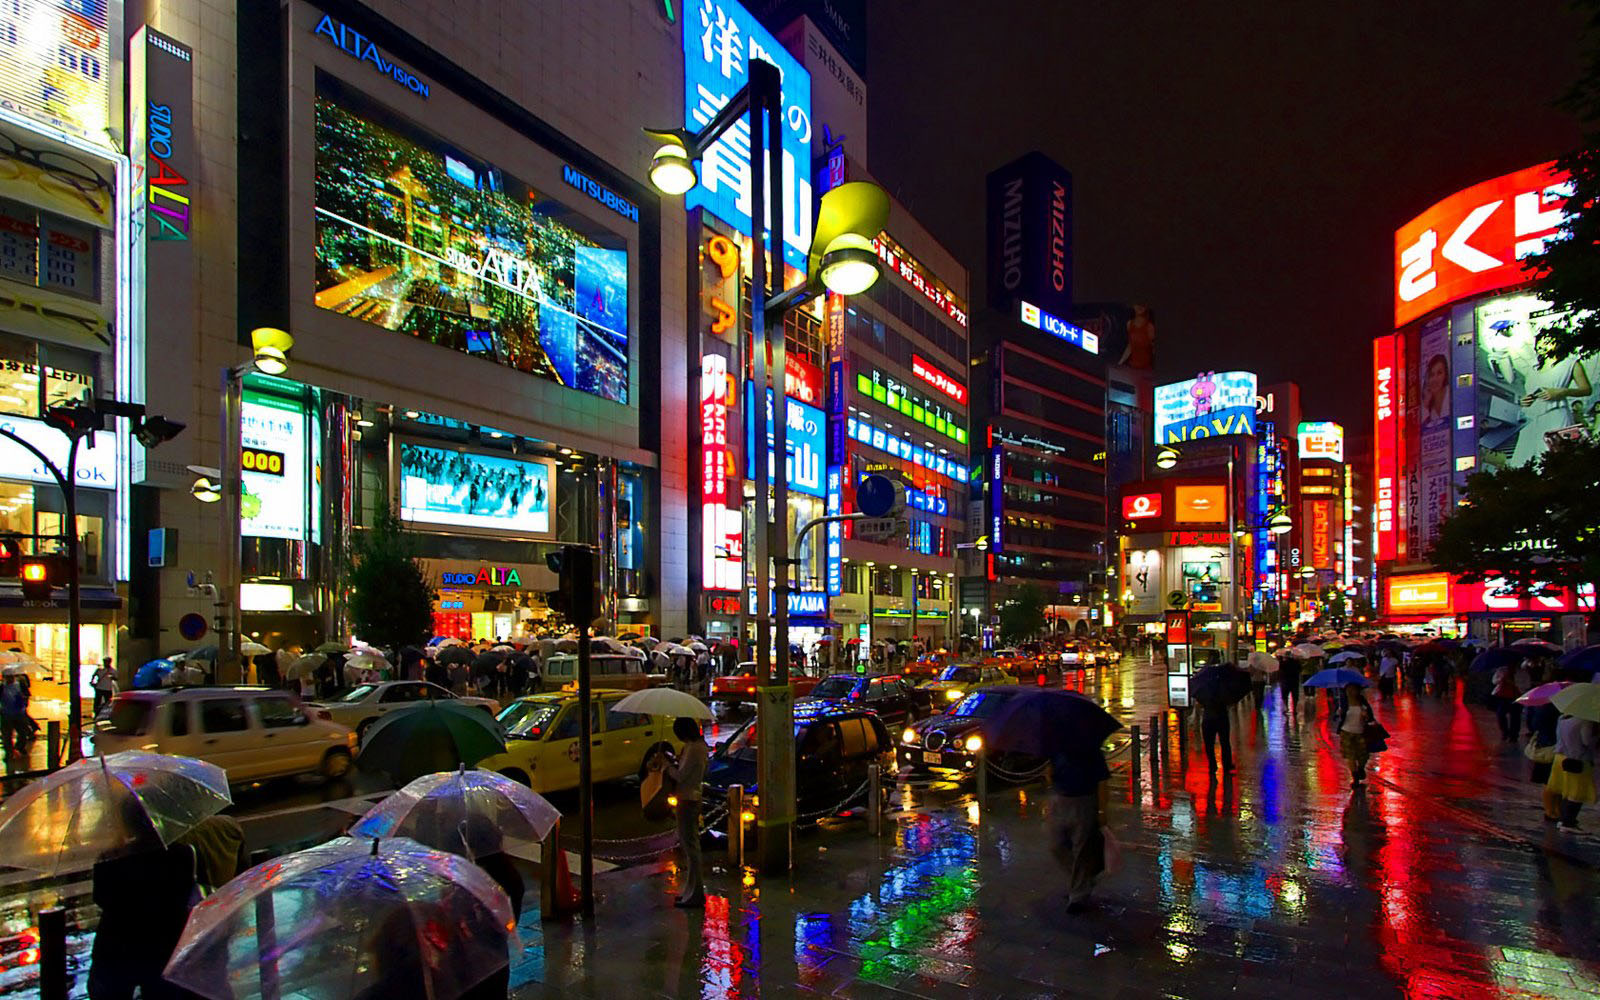 Tokyo Japan, business street with giant screens walpaper